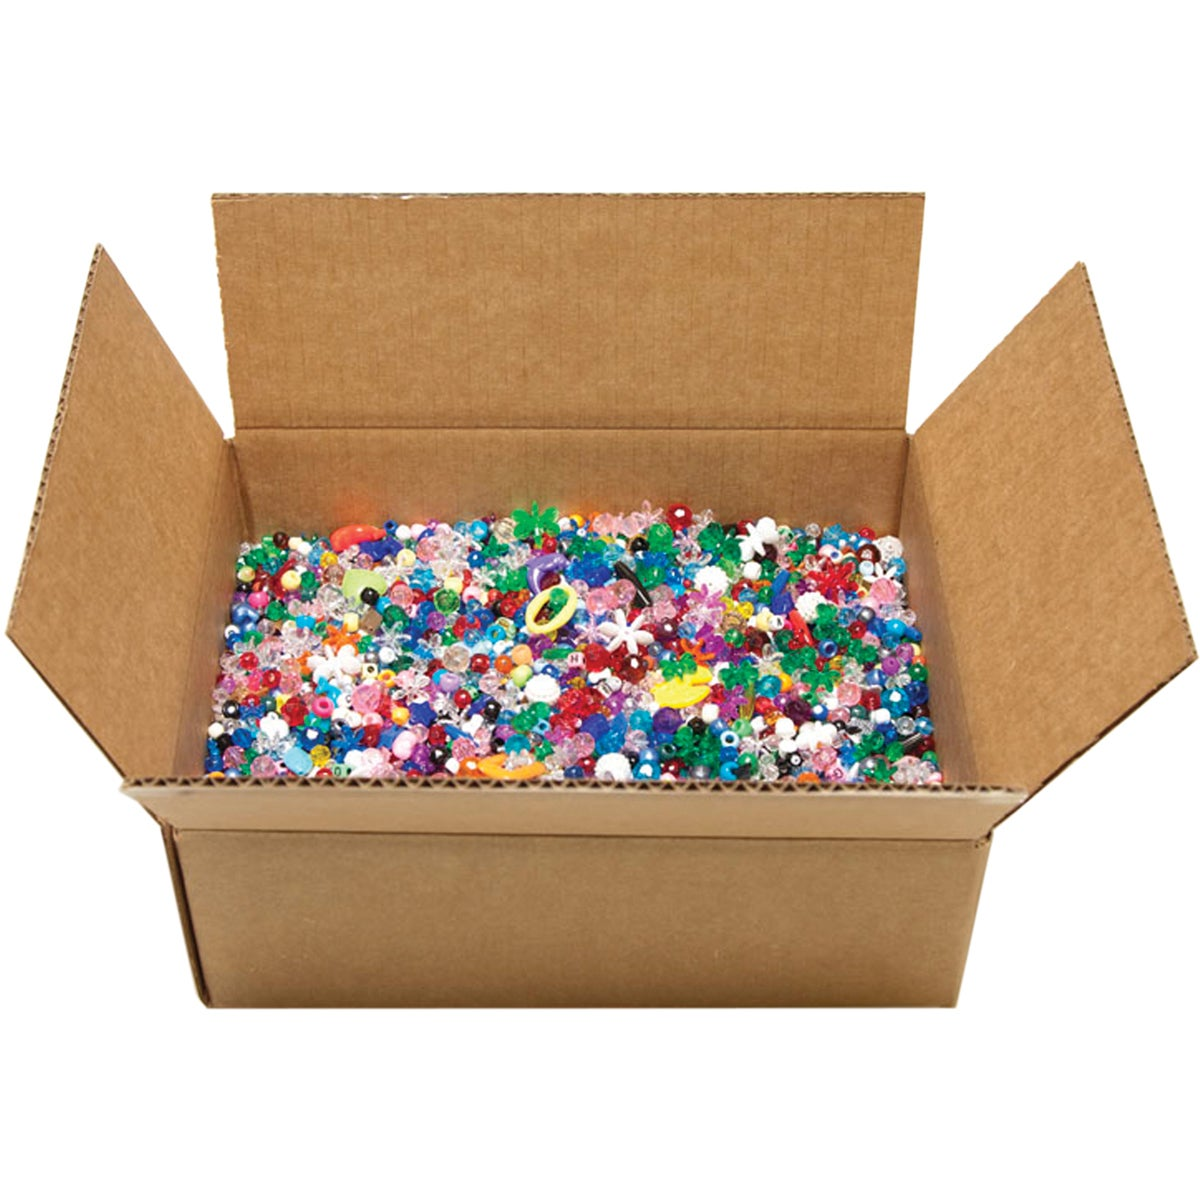 Cousin Corporation of America Boxed Mixed Plastic Beads (...